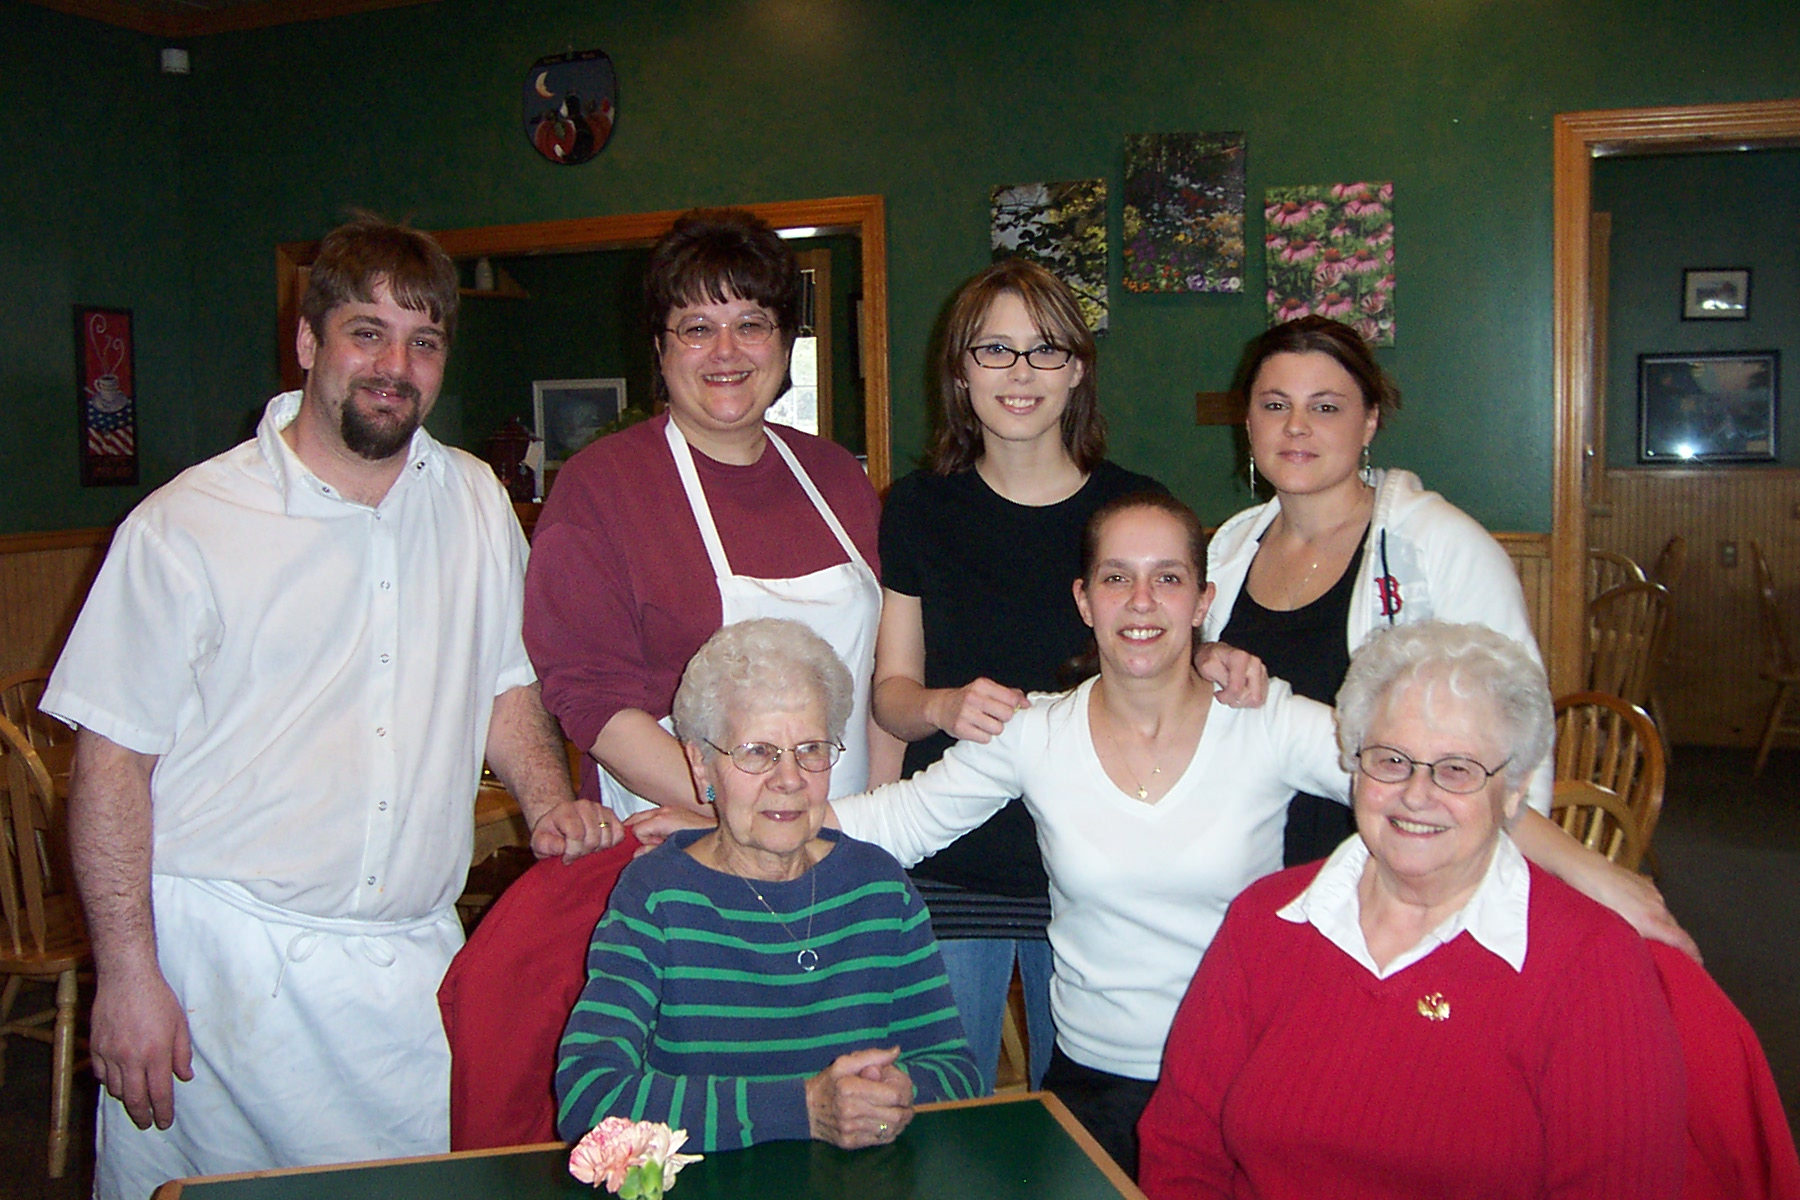 Standing, Chef, Jason Mashteare, Manager, Debbie Flemming, Co-Owner, Jessica Cross, Co-Owner, Amanda Wolcott and Waitress, Amy Ducharme - dcp 7883